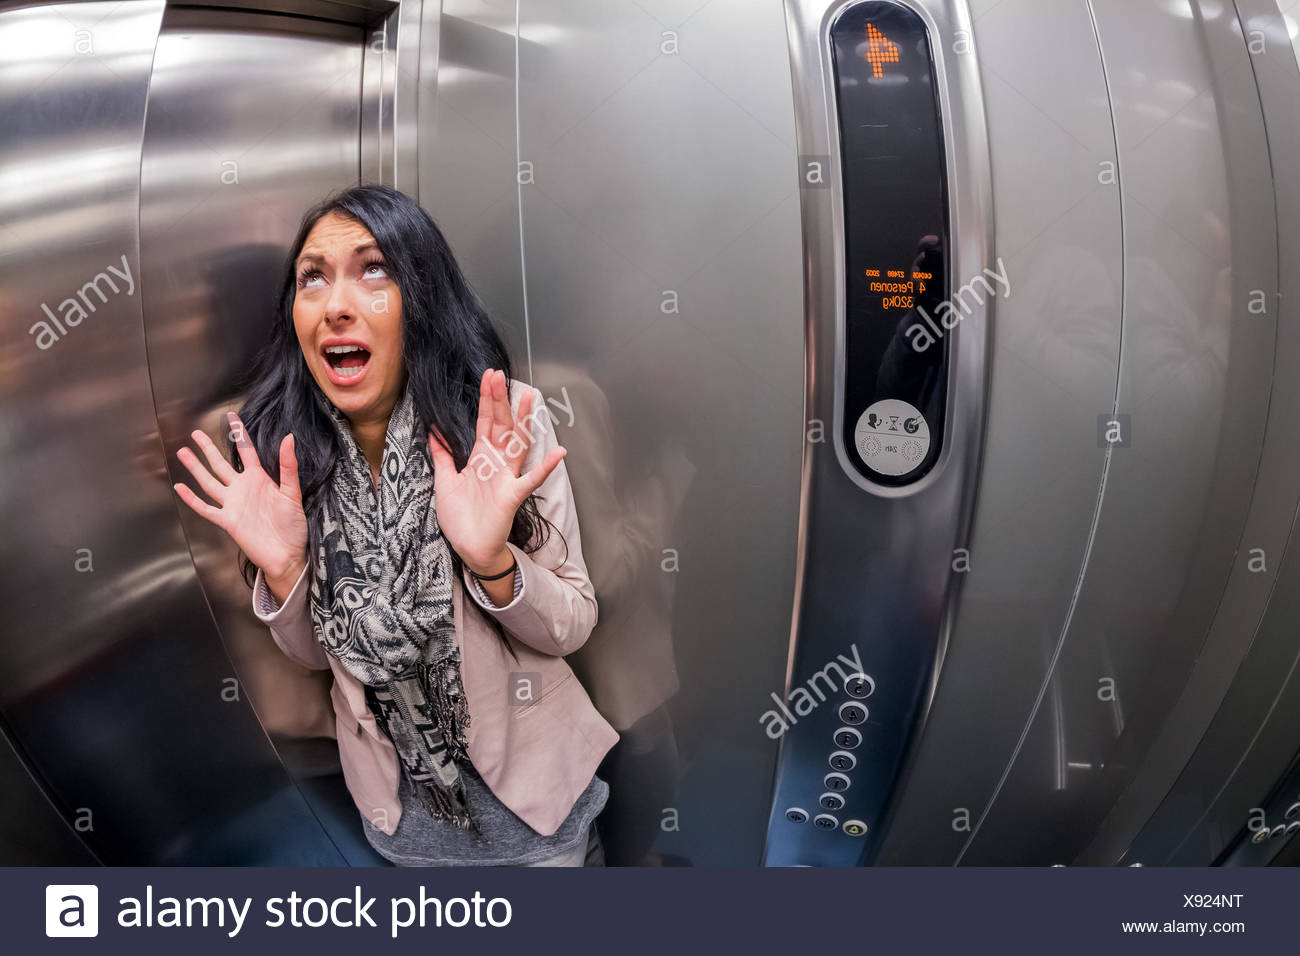 woman with claustrophobia in an elevator, Austria, Vienna - Stock Image